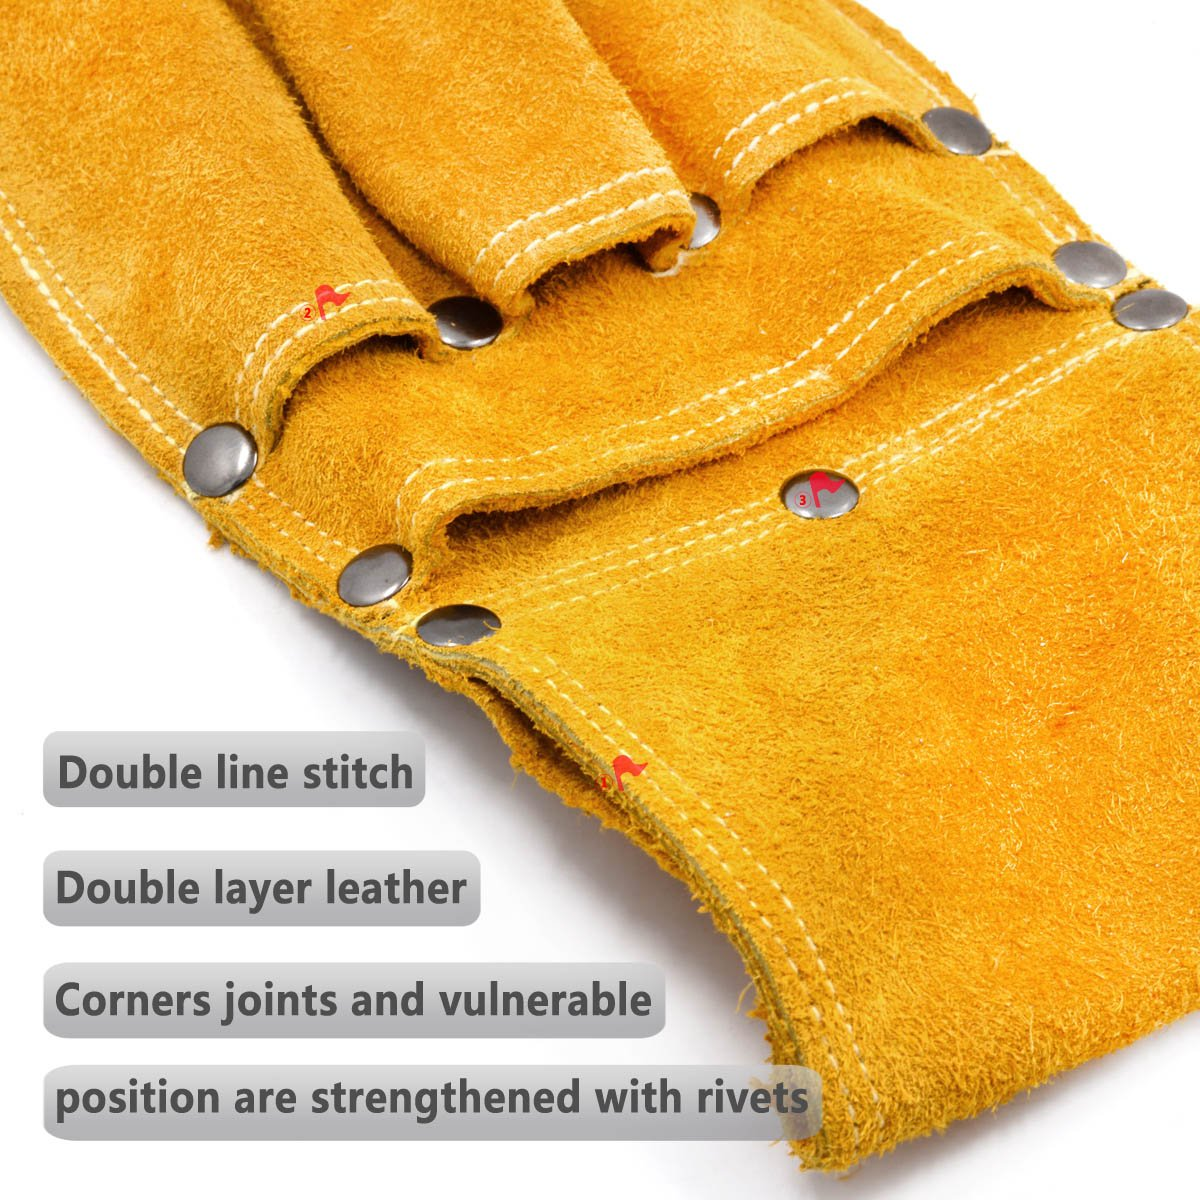 Koopi Heavy Duty Bilayer Suede Electriciann Machinist Tool Bag Holster Pouch Carpenter Work Apron And Gardener Tool Organizer-4 Pocket by Koopi (Image #4)